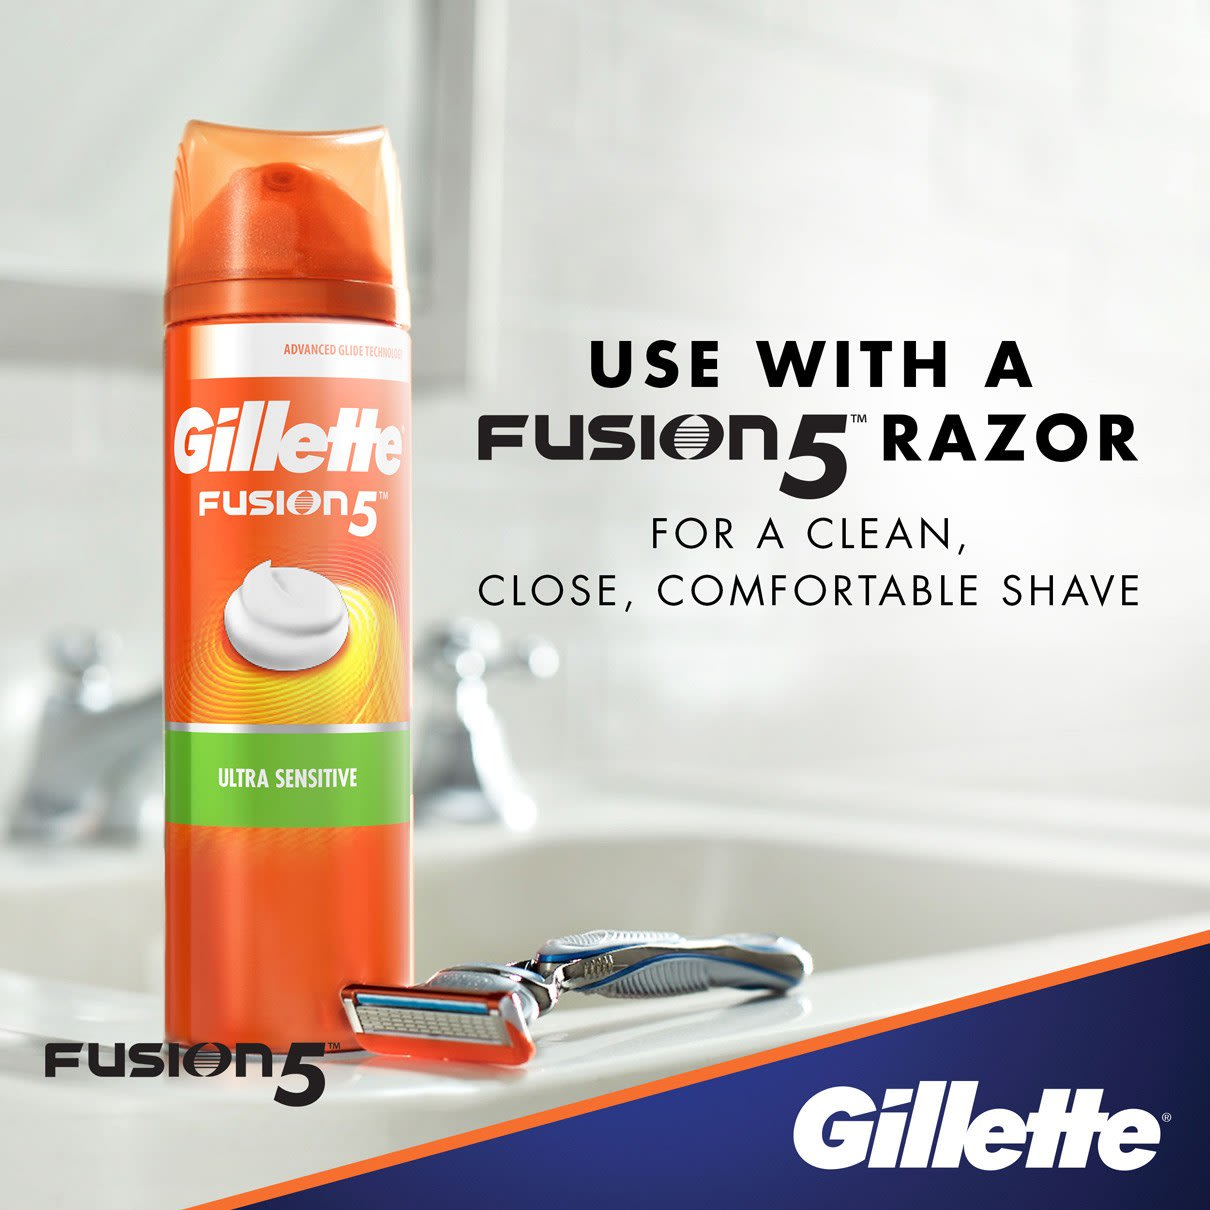 Use with a Fusion5 Razor I  Gillette Fusion5 Ultra Sensitive Shave Foam